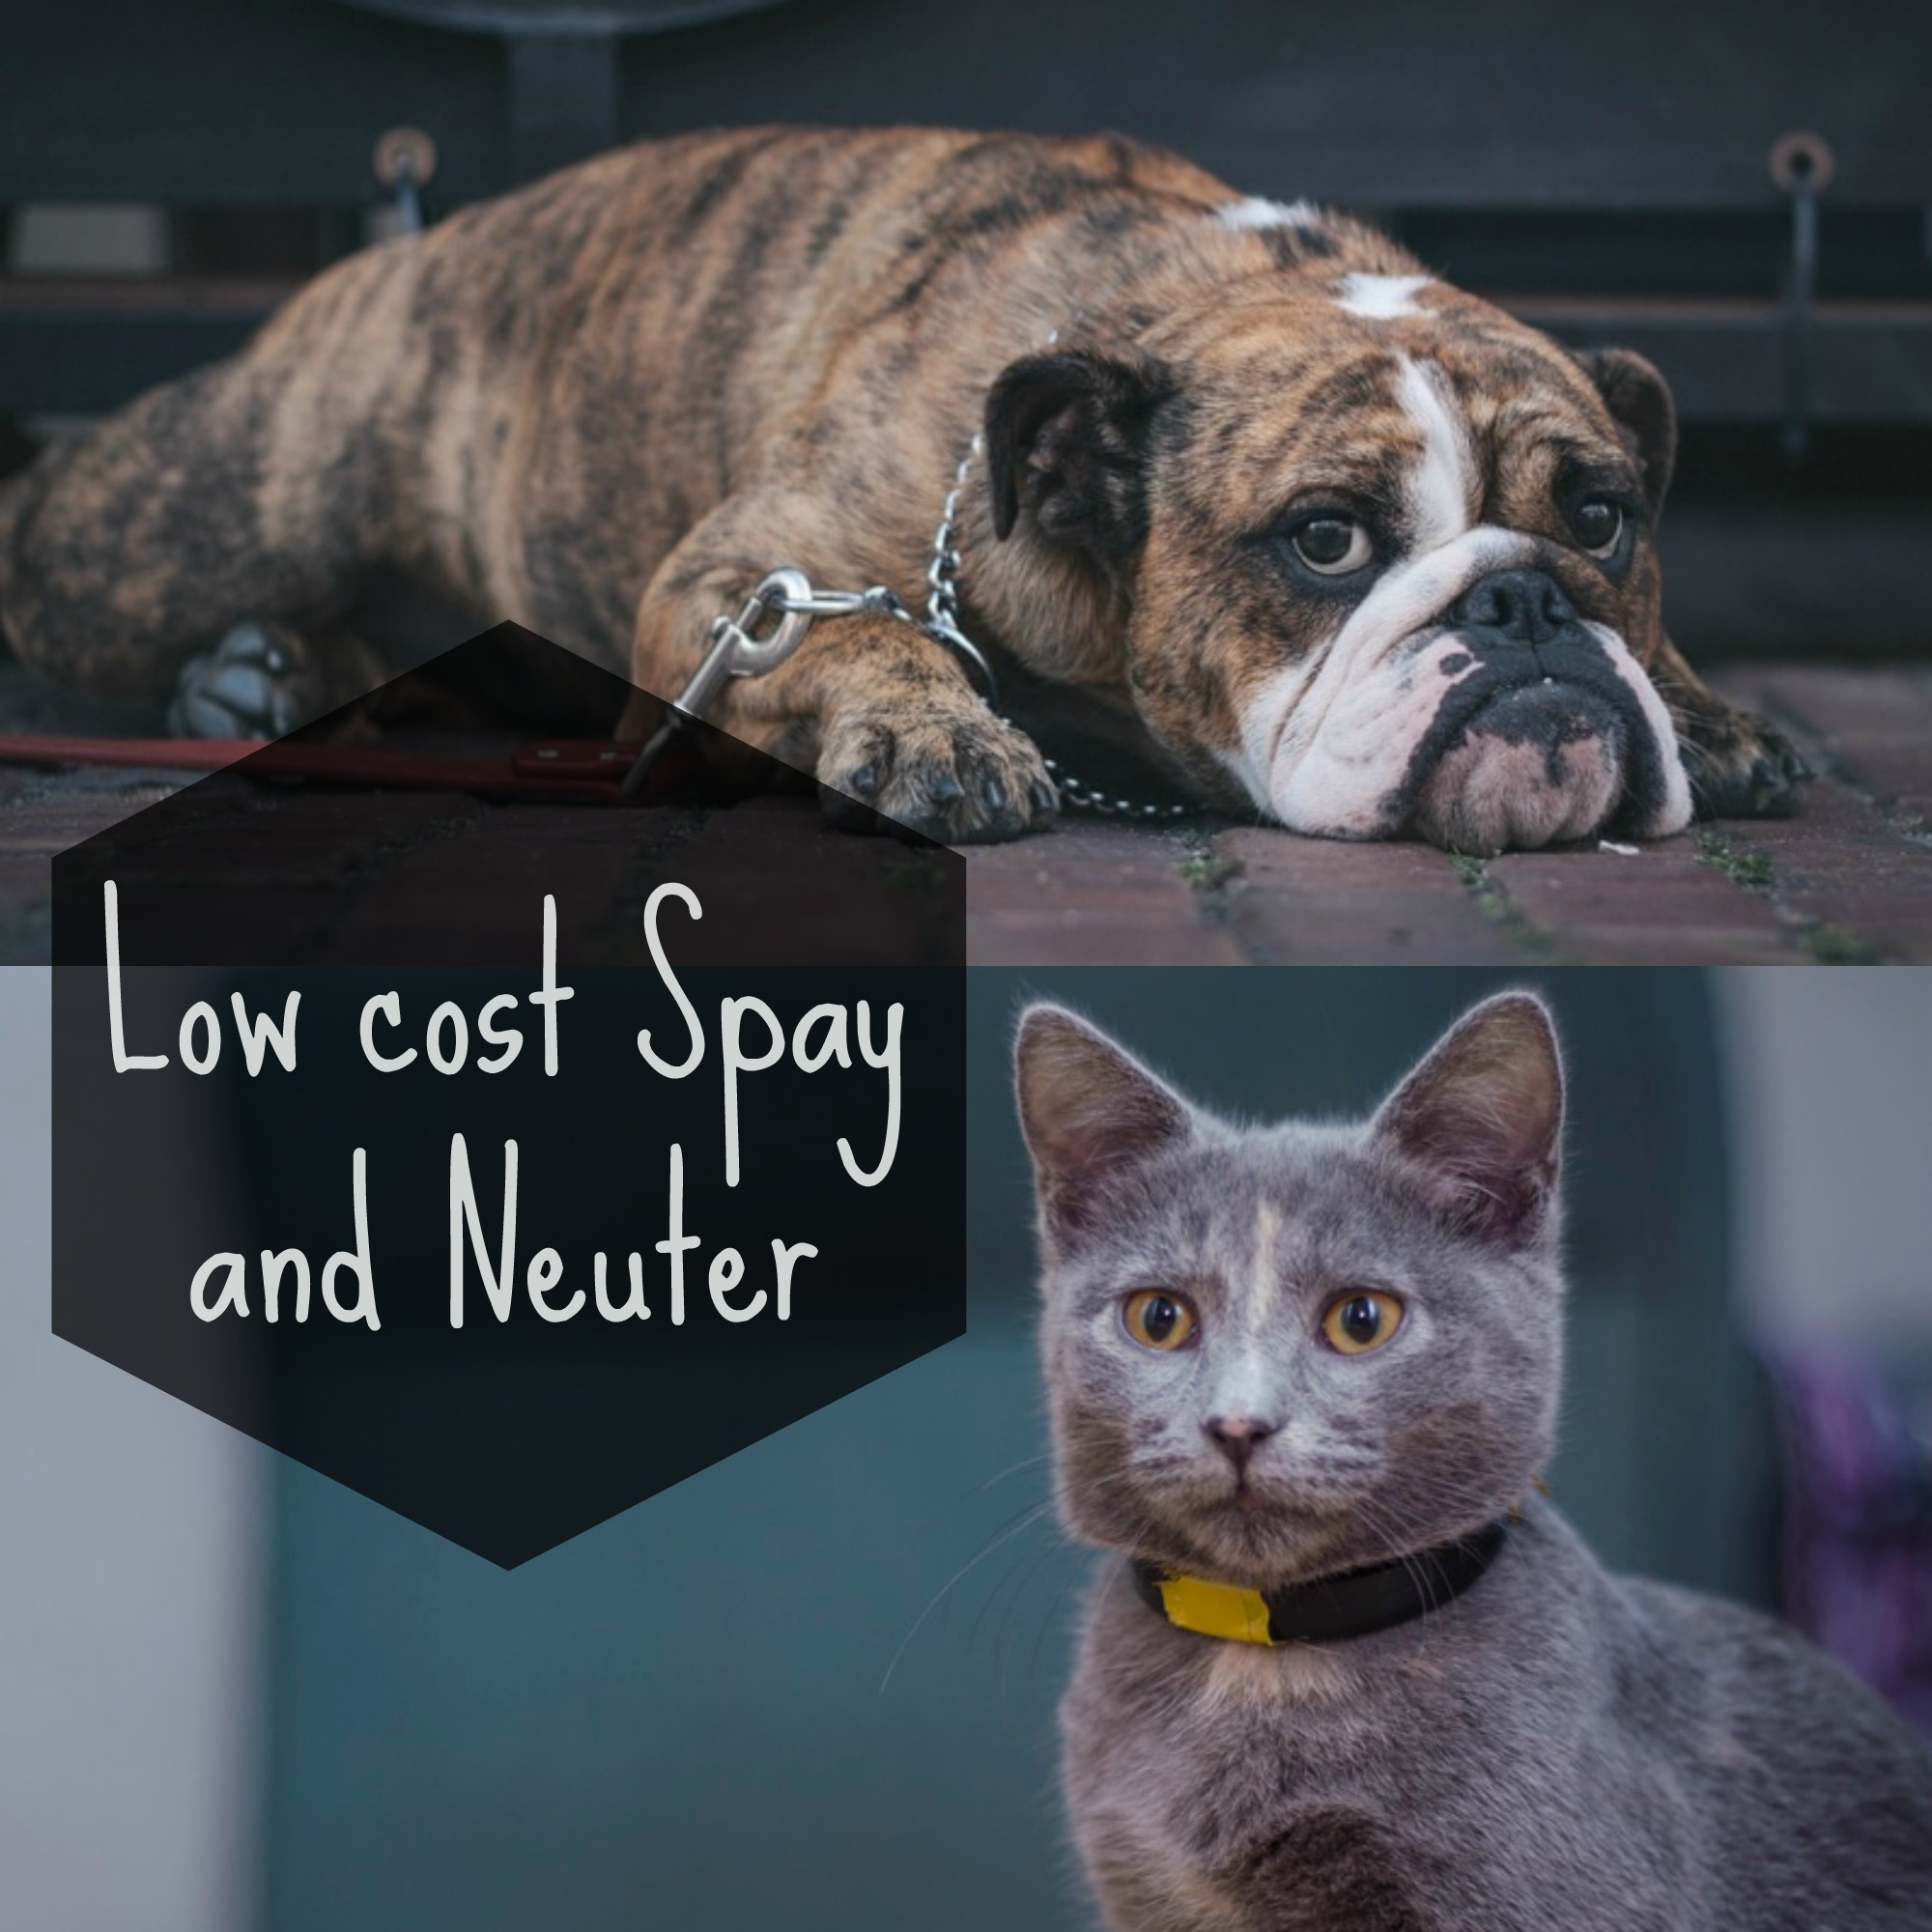 Low cost Spay and Neuter